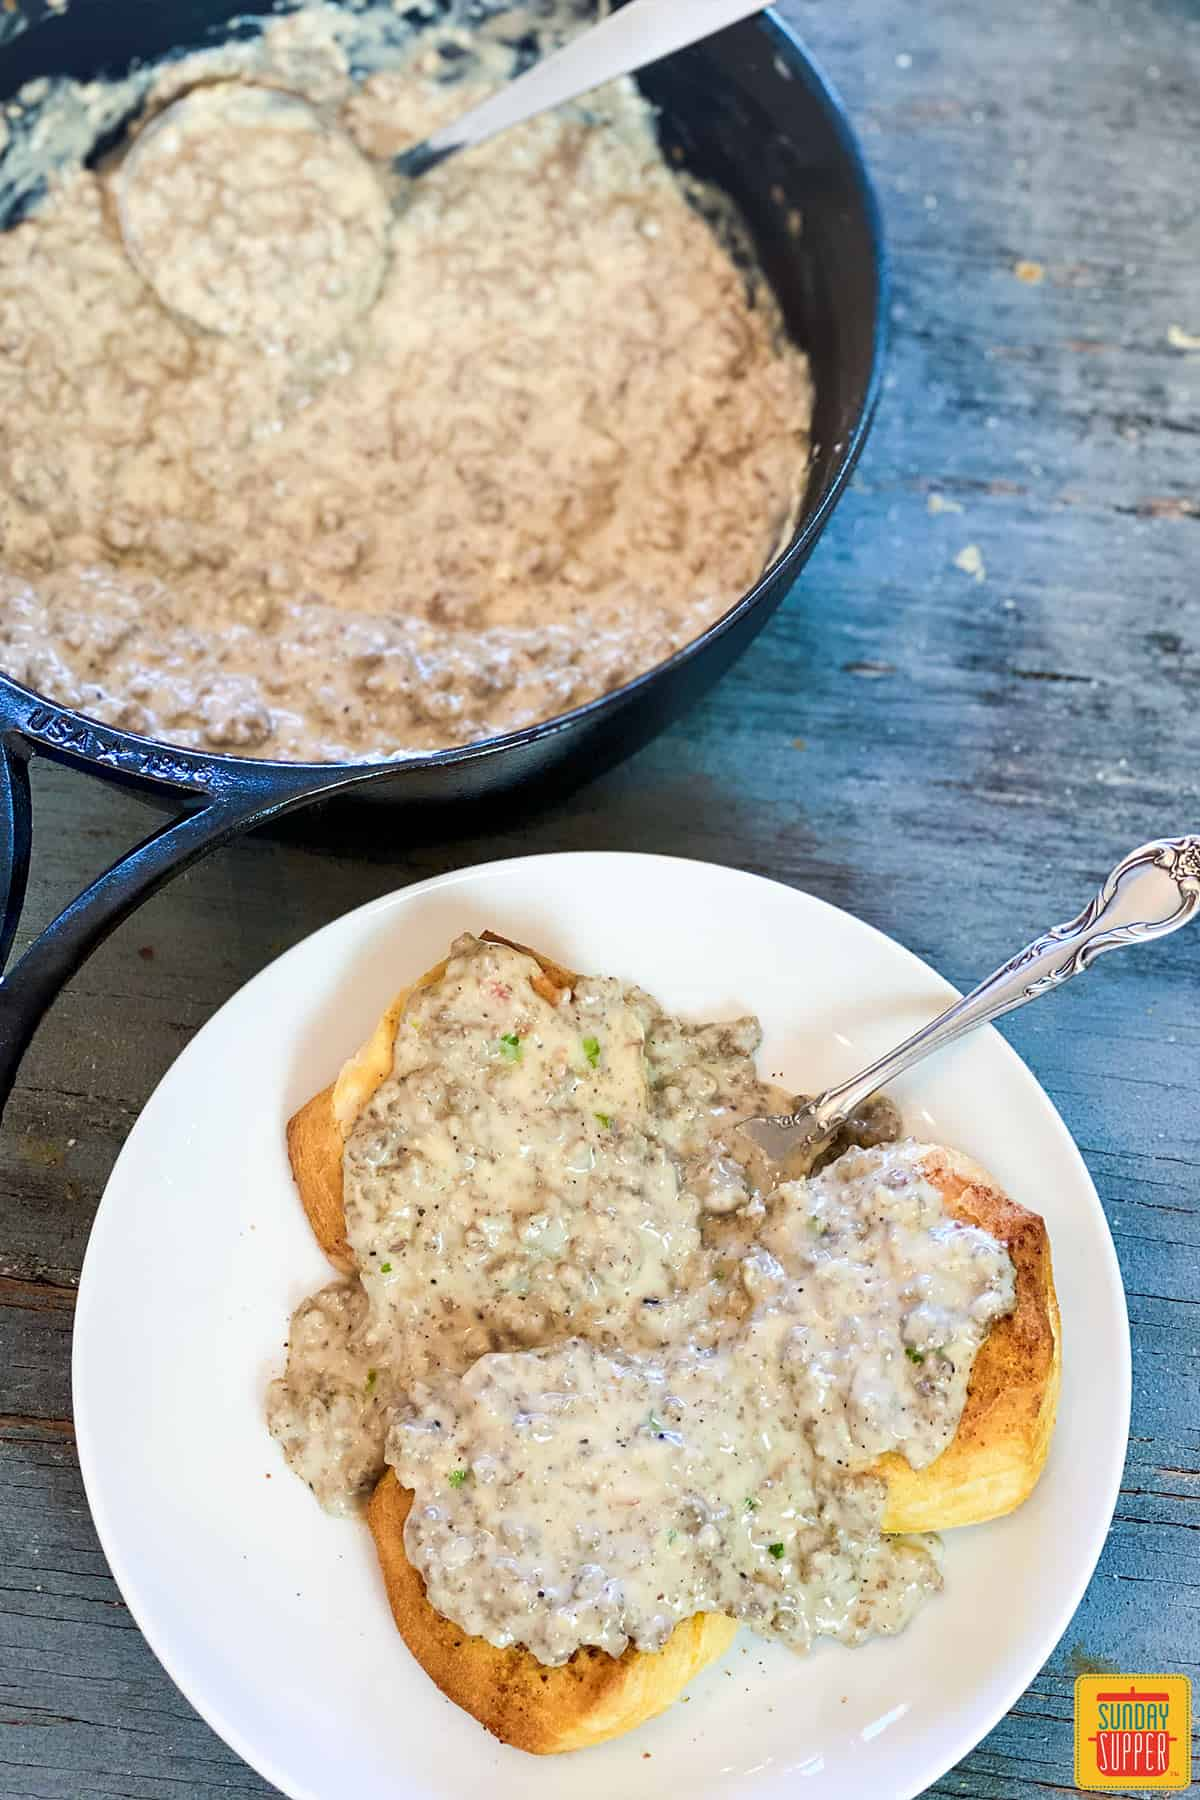 Sausage gravy biscuits on a white plate next to a skillet of sausage gravy